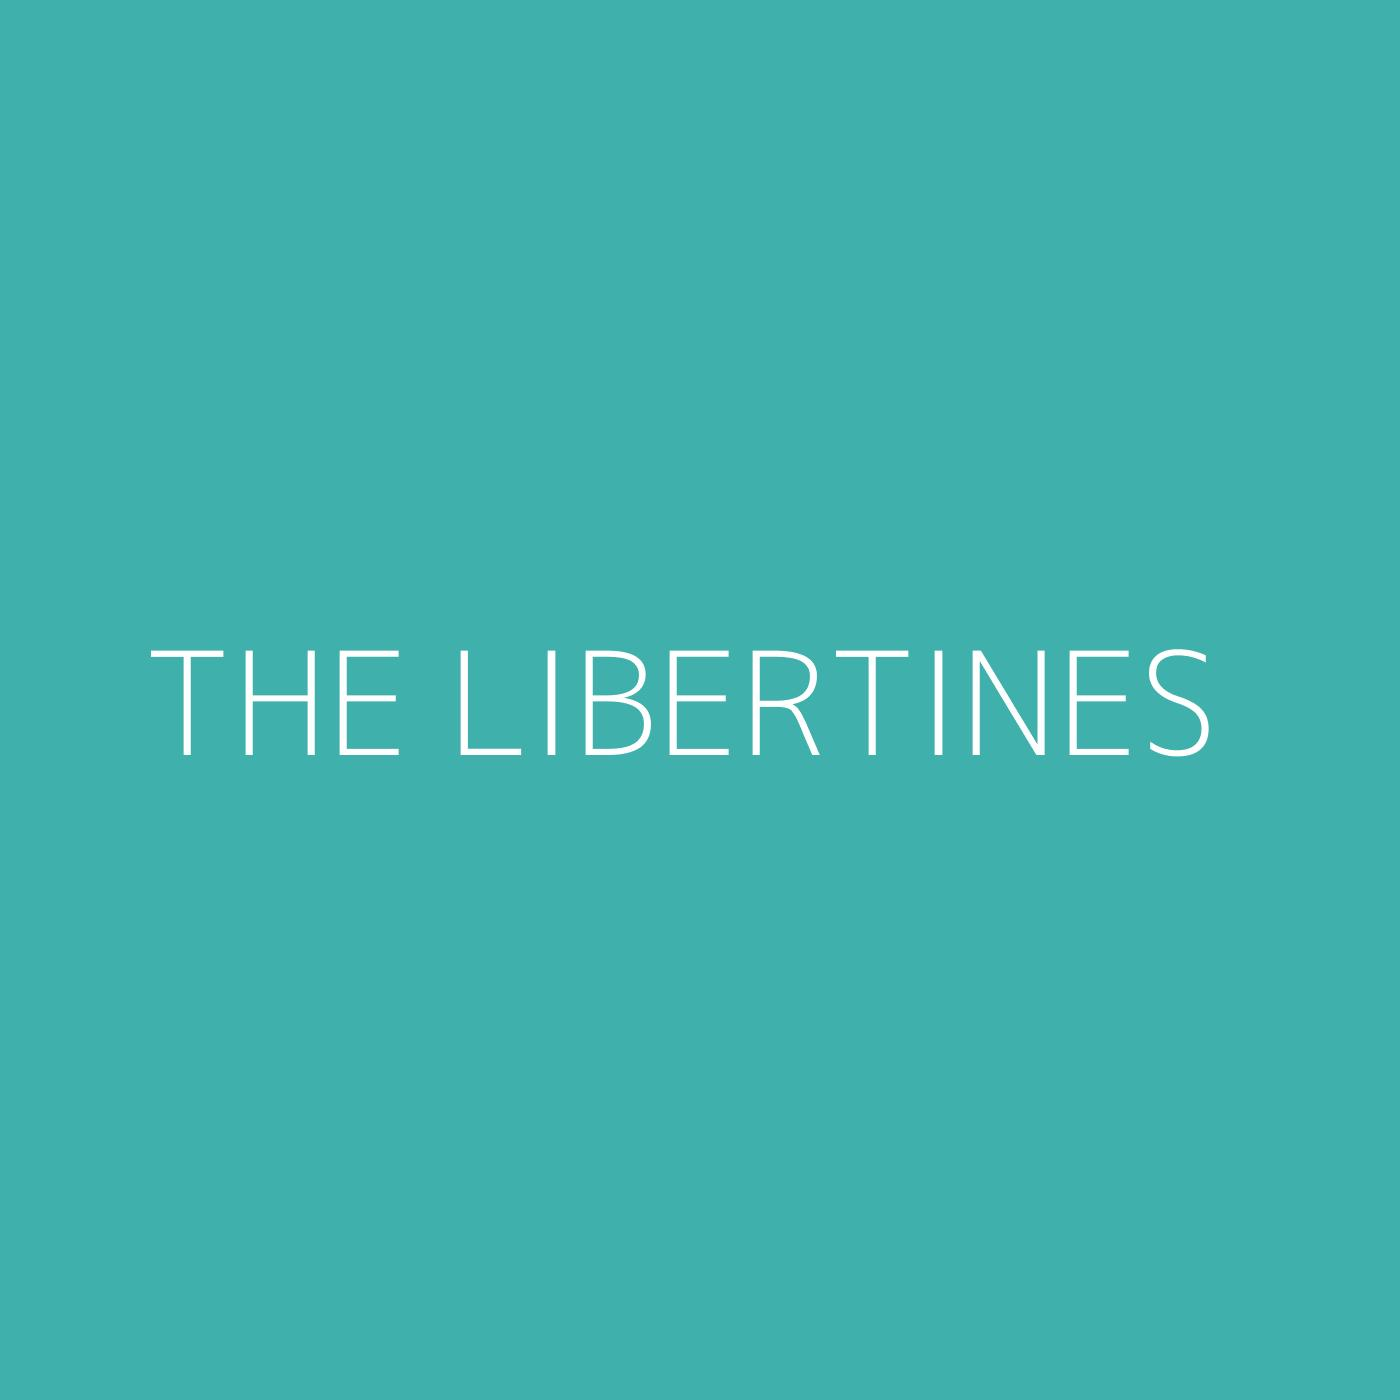 The Libertines Playlist Artwork